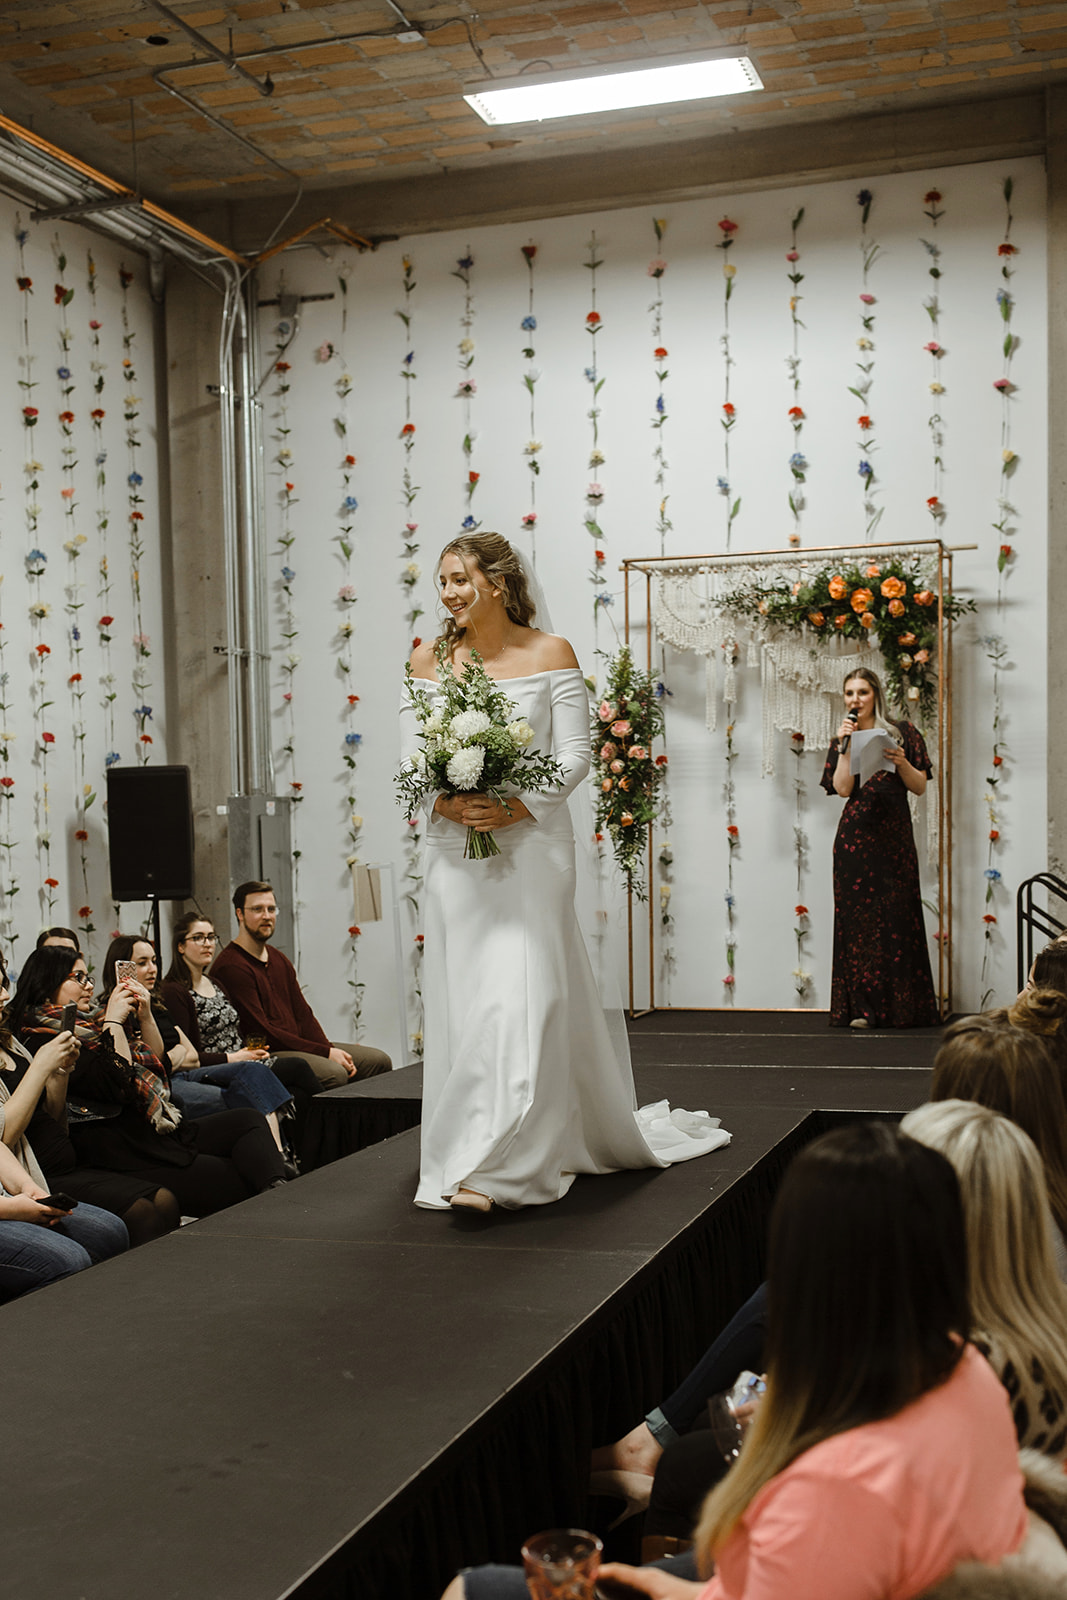 spokane wedding dress fashion show off shoulders runway model white flowers